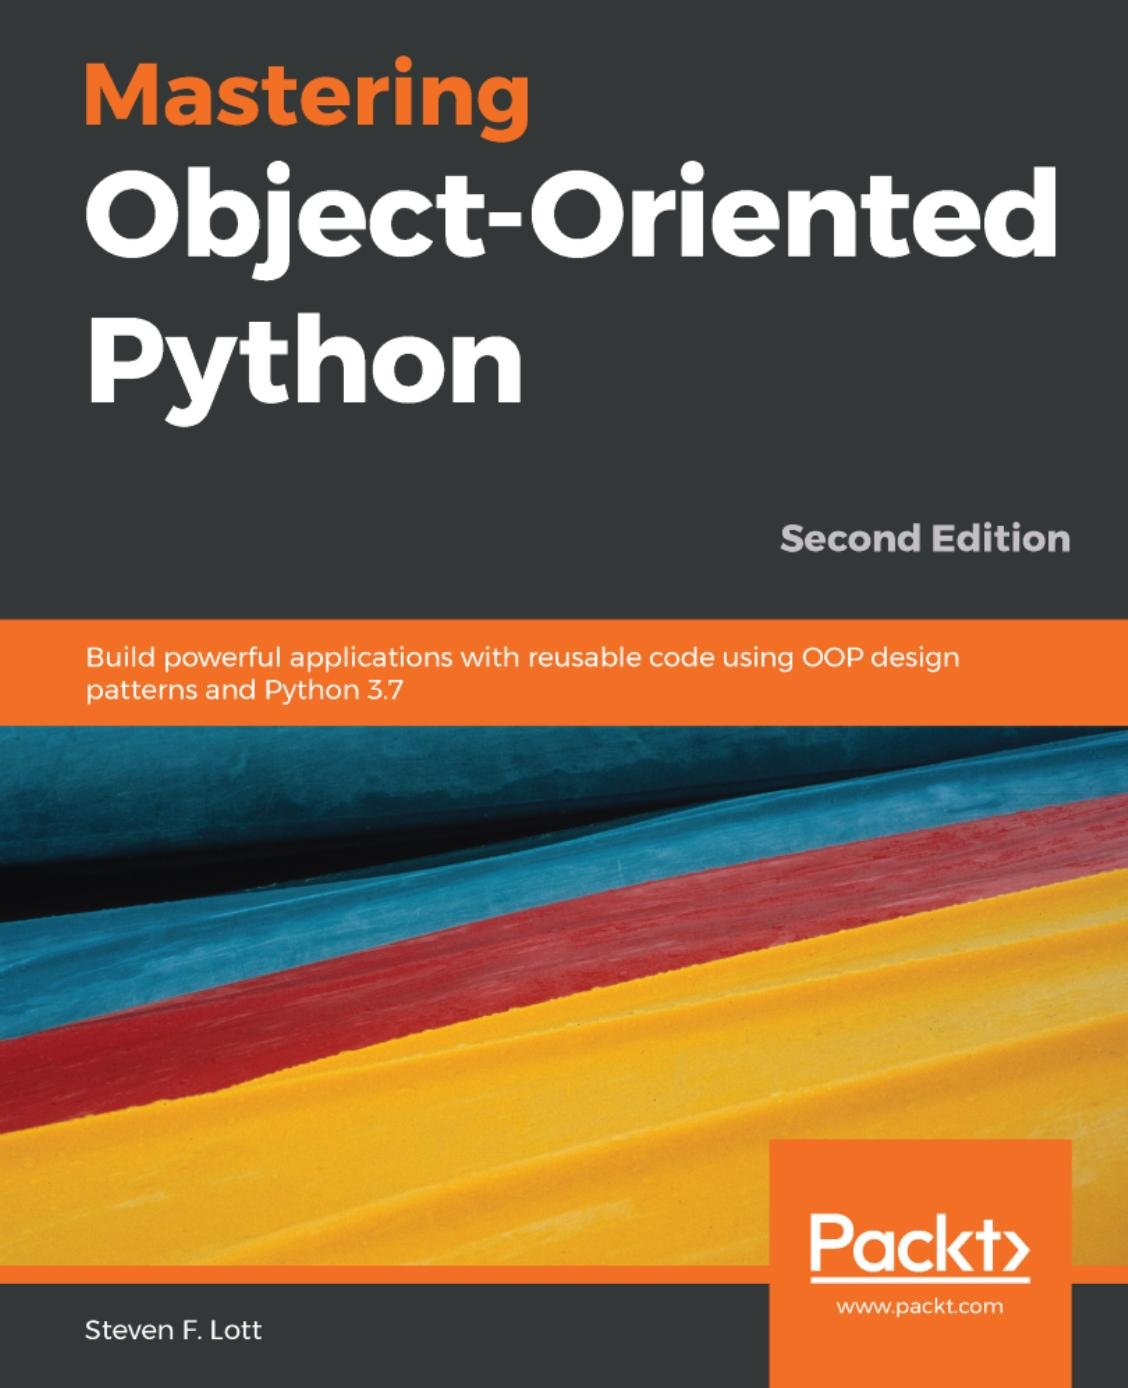 Mastering Object-Oriented Python, Second Edition-P2P